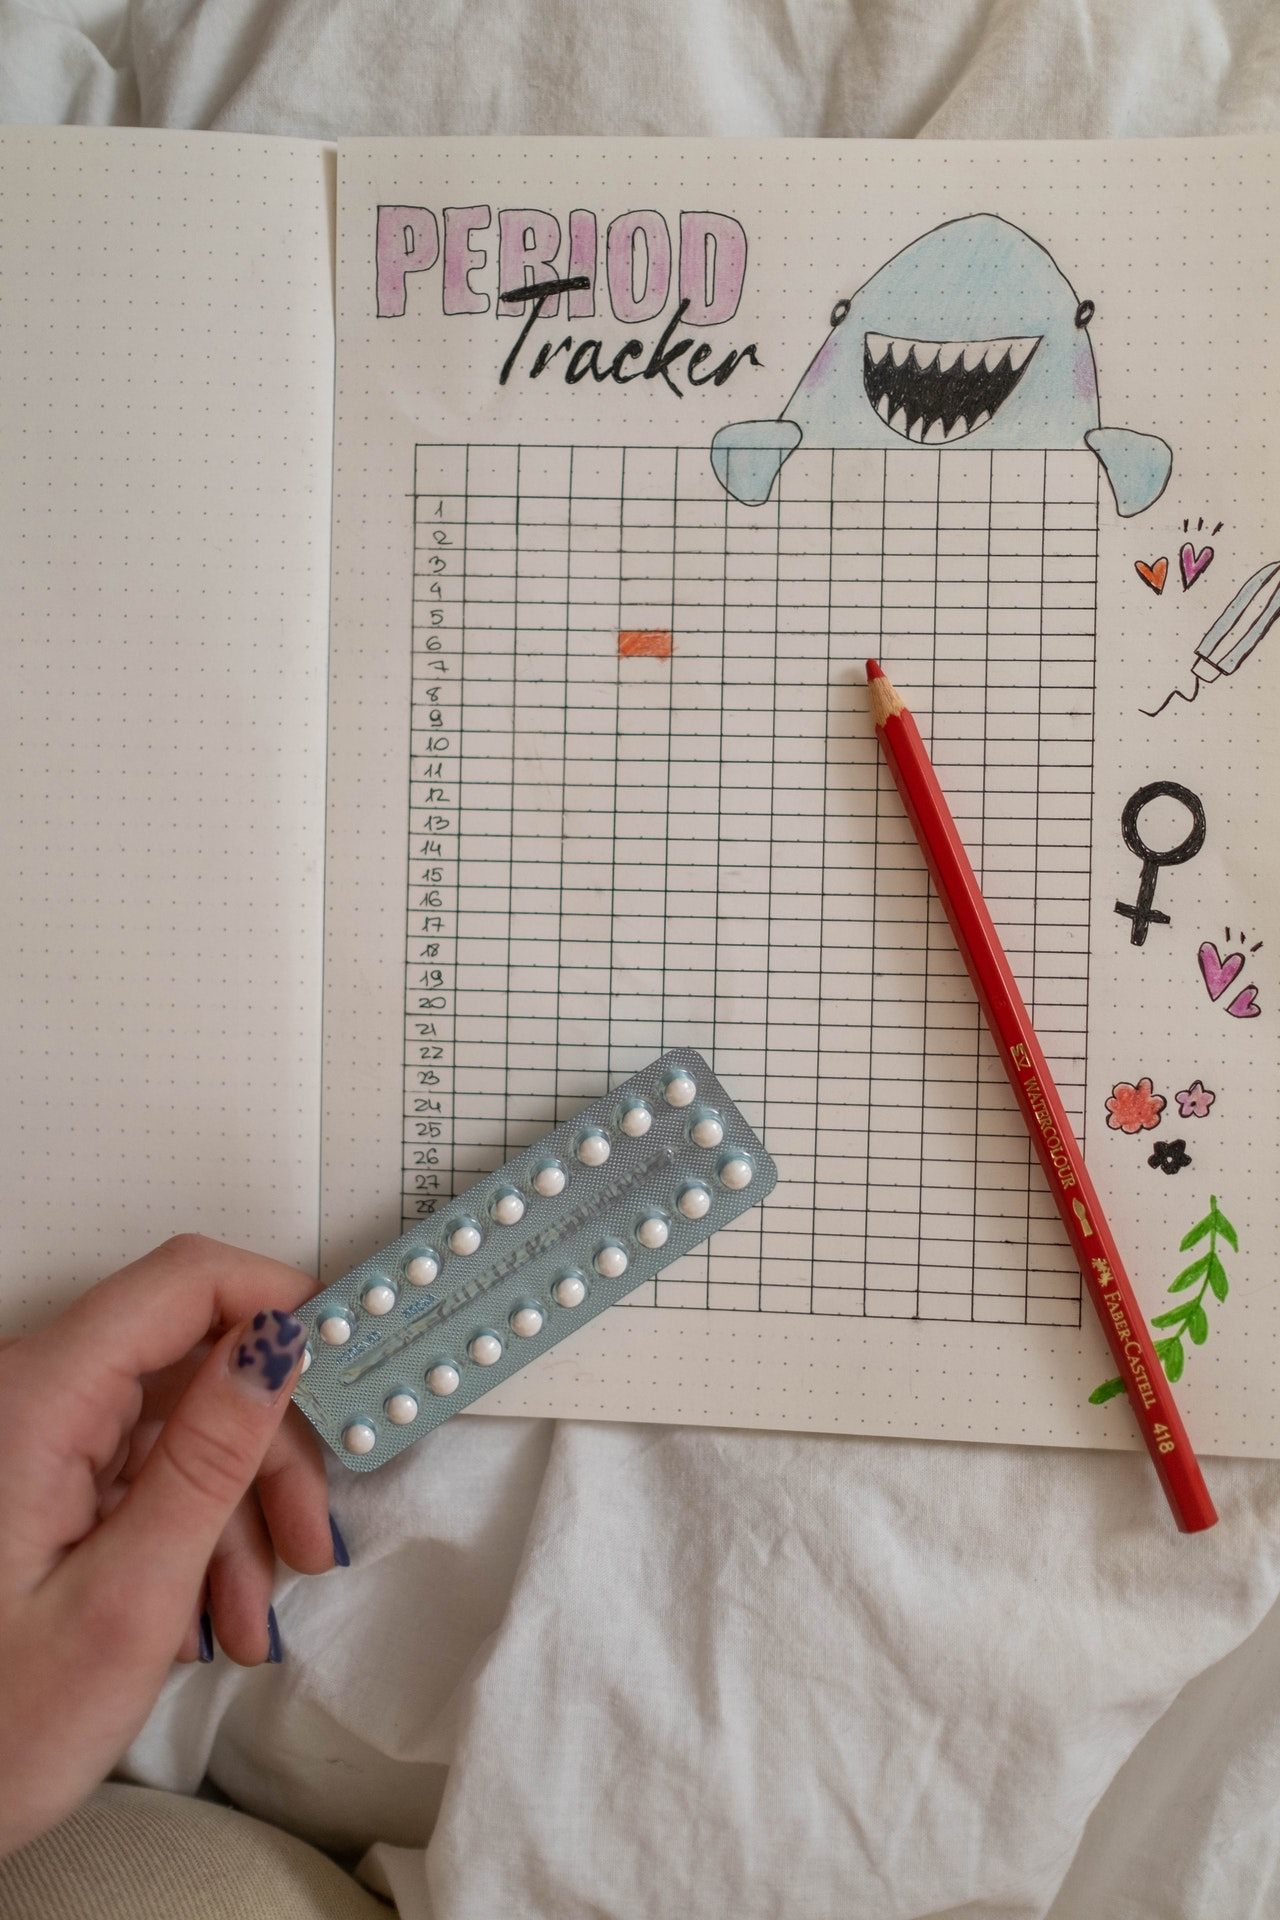 How to Tell Which Birth Control Method is Best for You